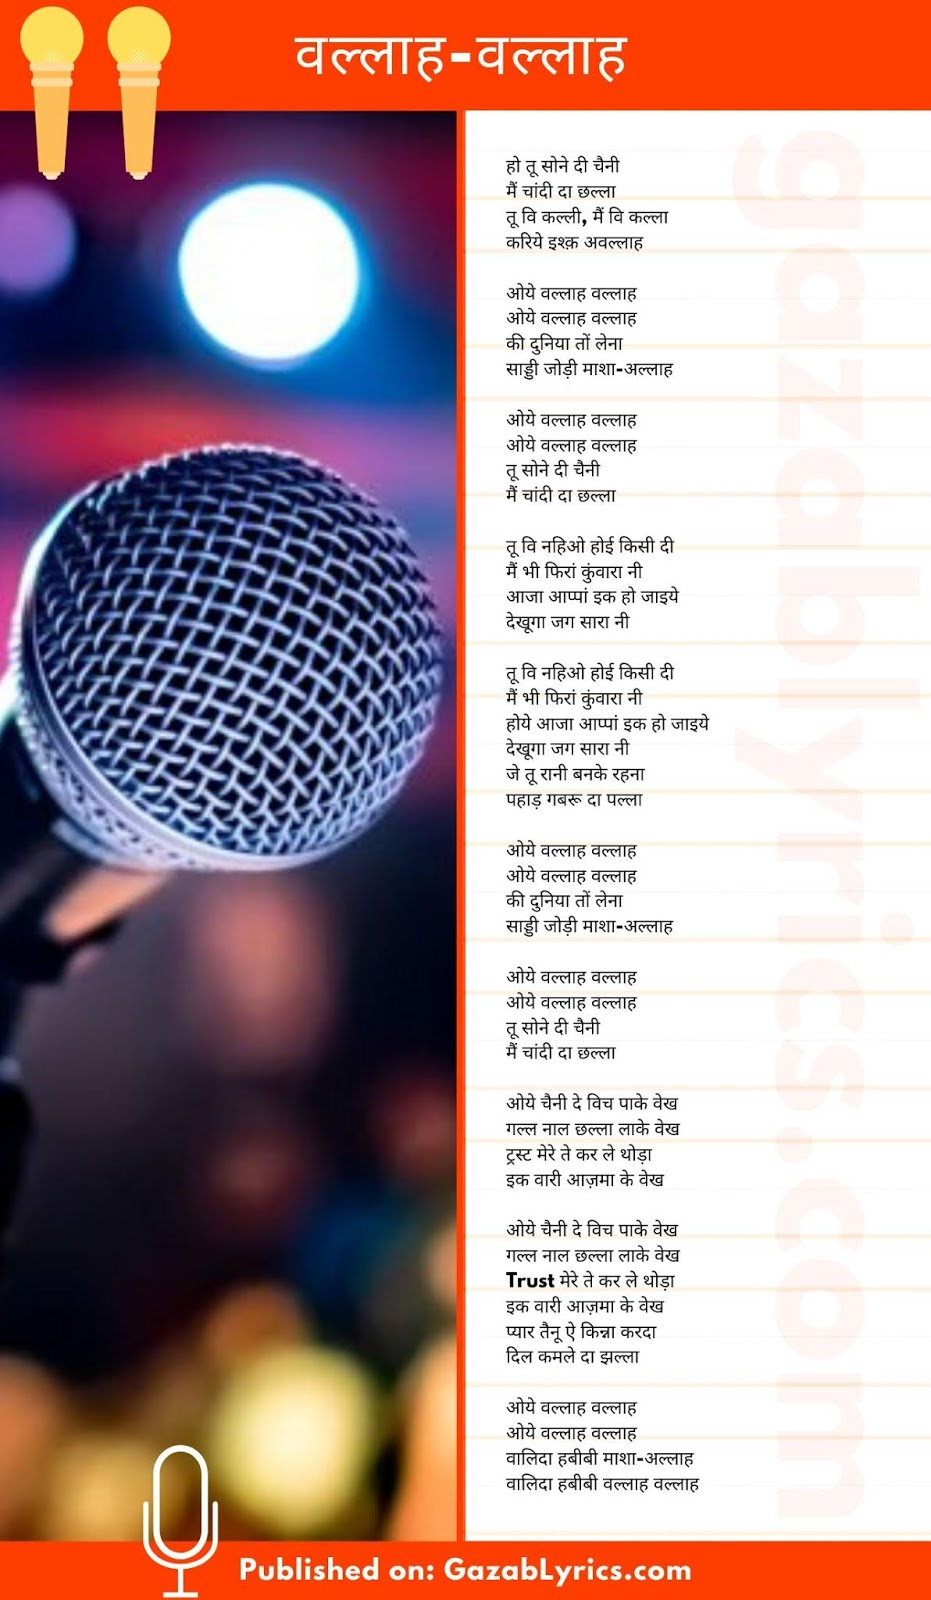 Wallah song lyrics image